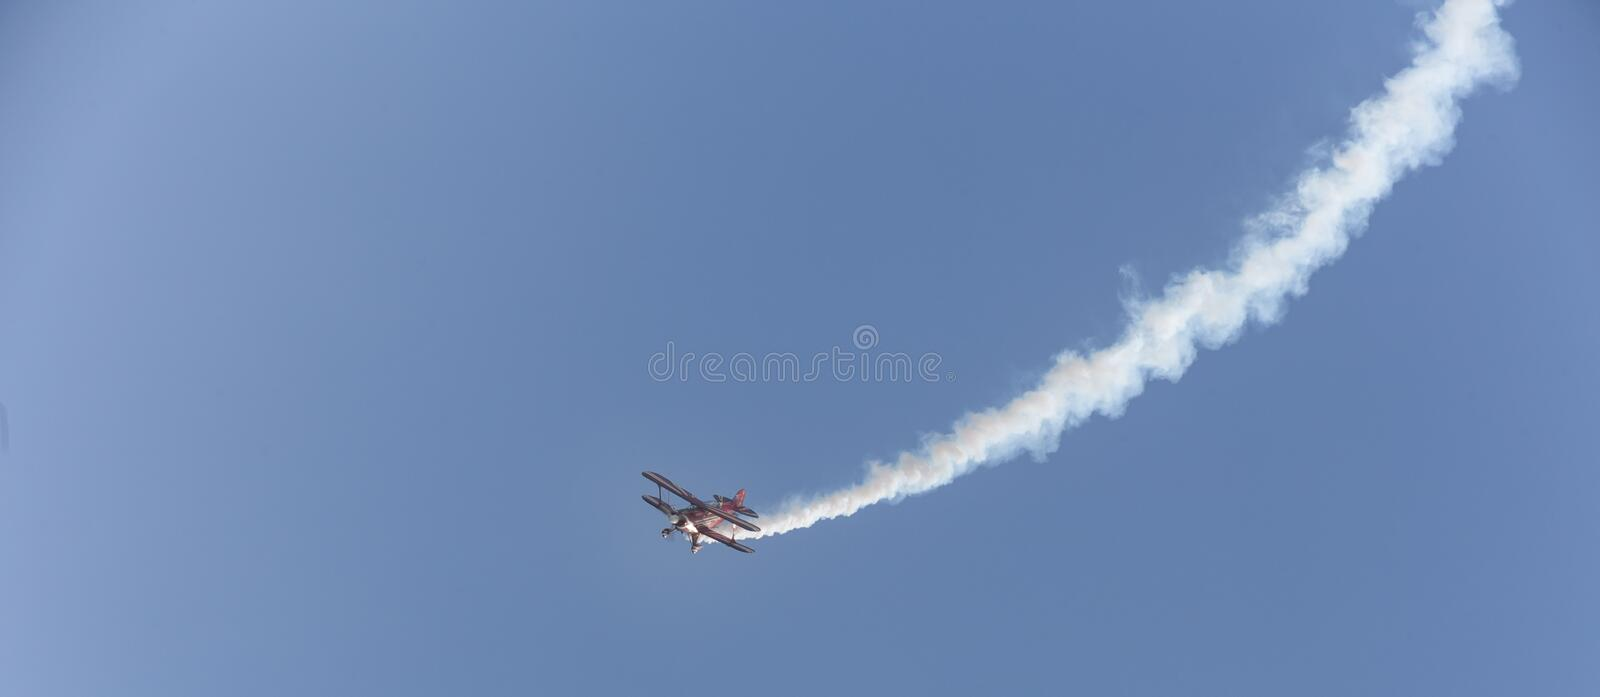 Stunt flyer airplane in the sky. A stunt flyer airplane in the sky stock images